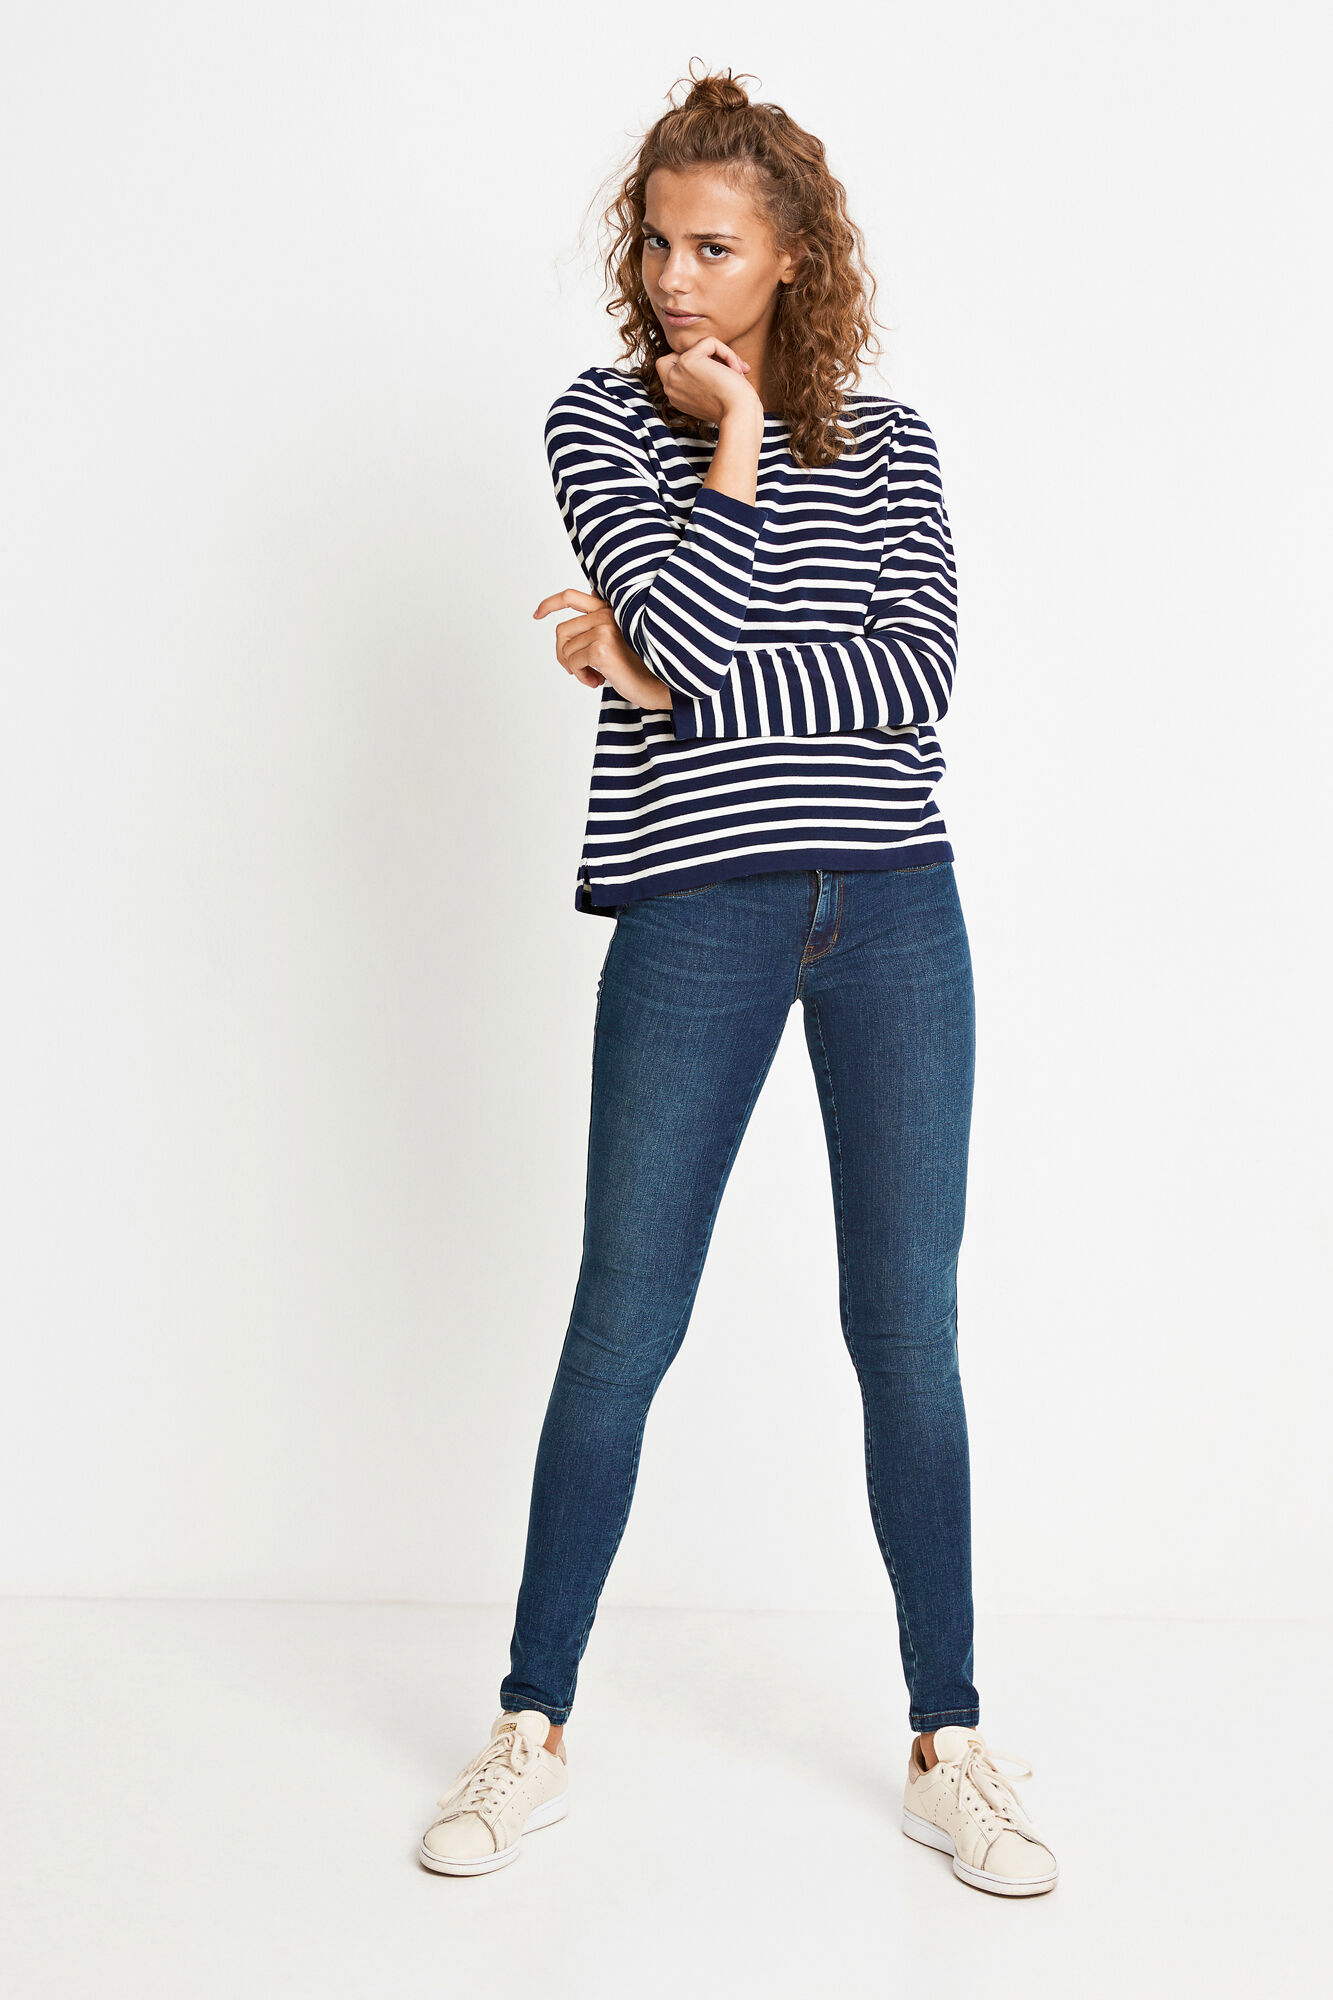 ENNICOSIA KNIT 5073, BLUE IRIS STRIPE